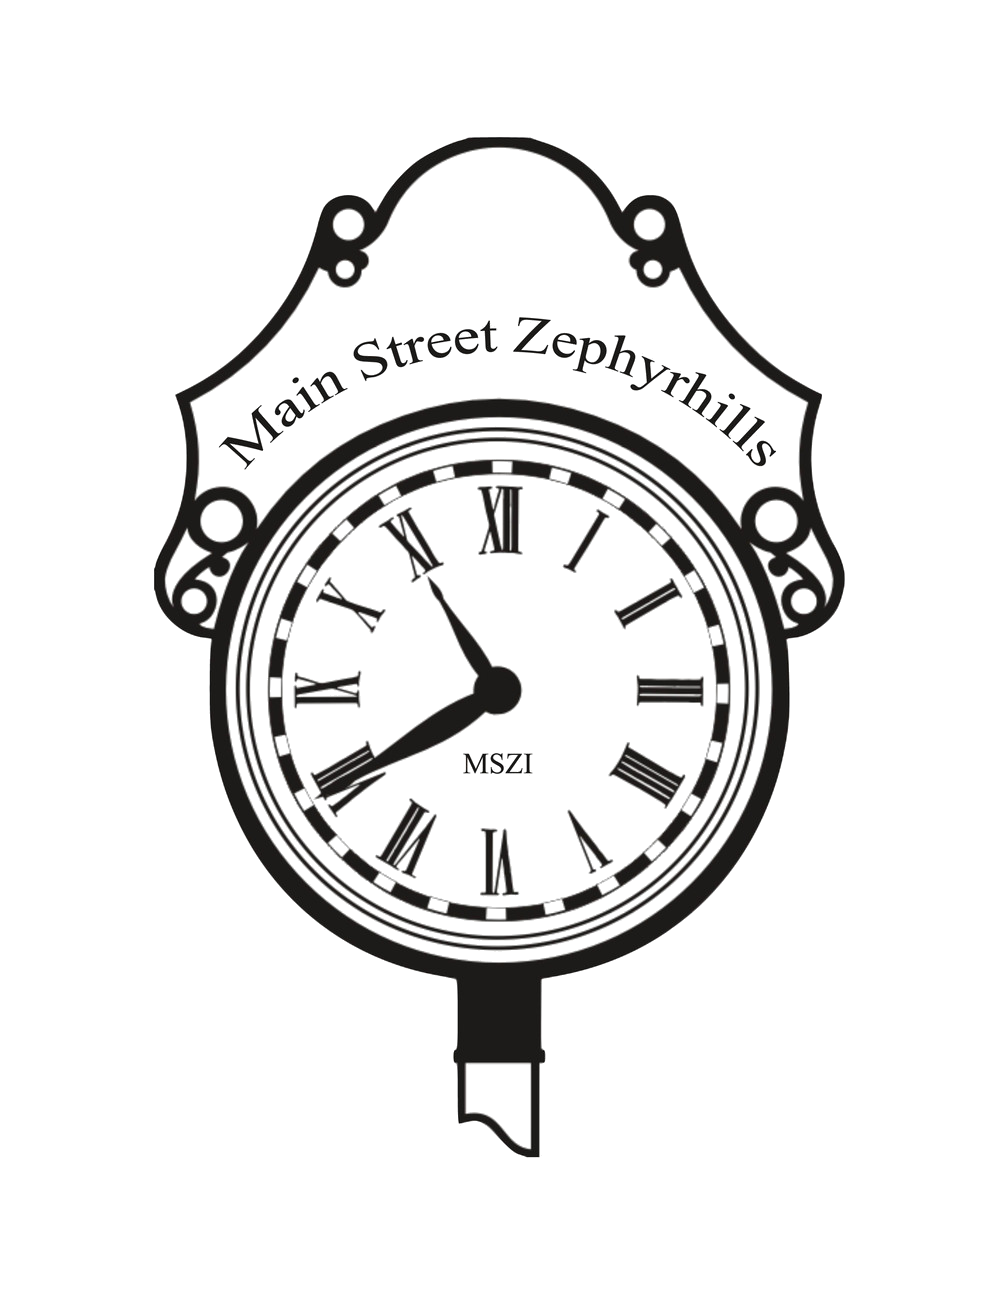 main street clock logo transparent background.png